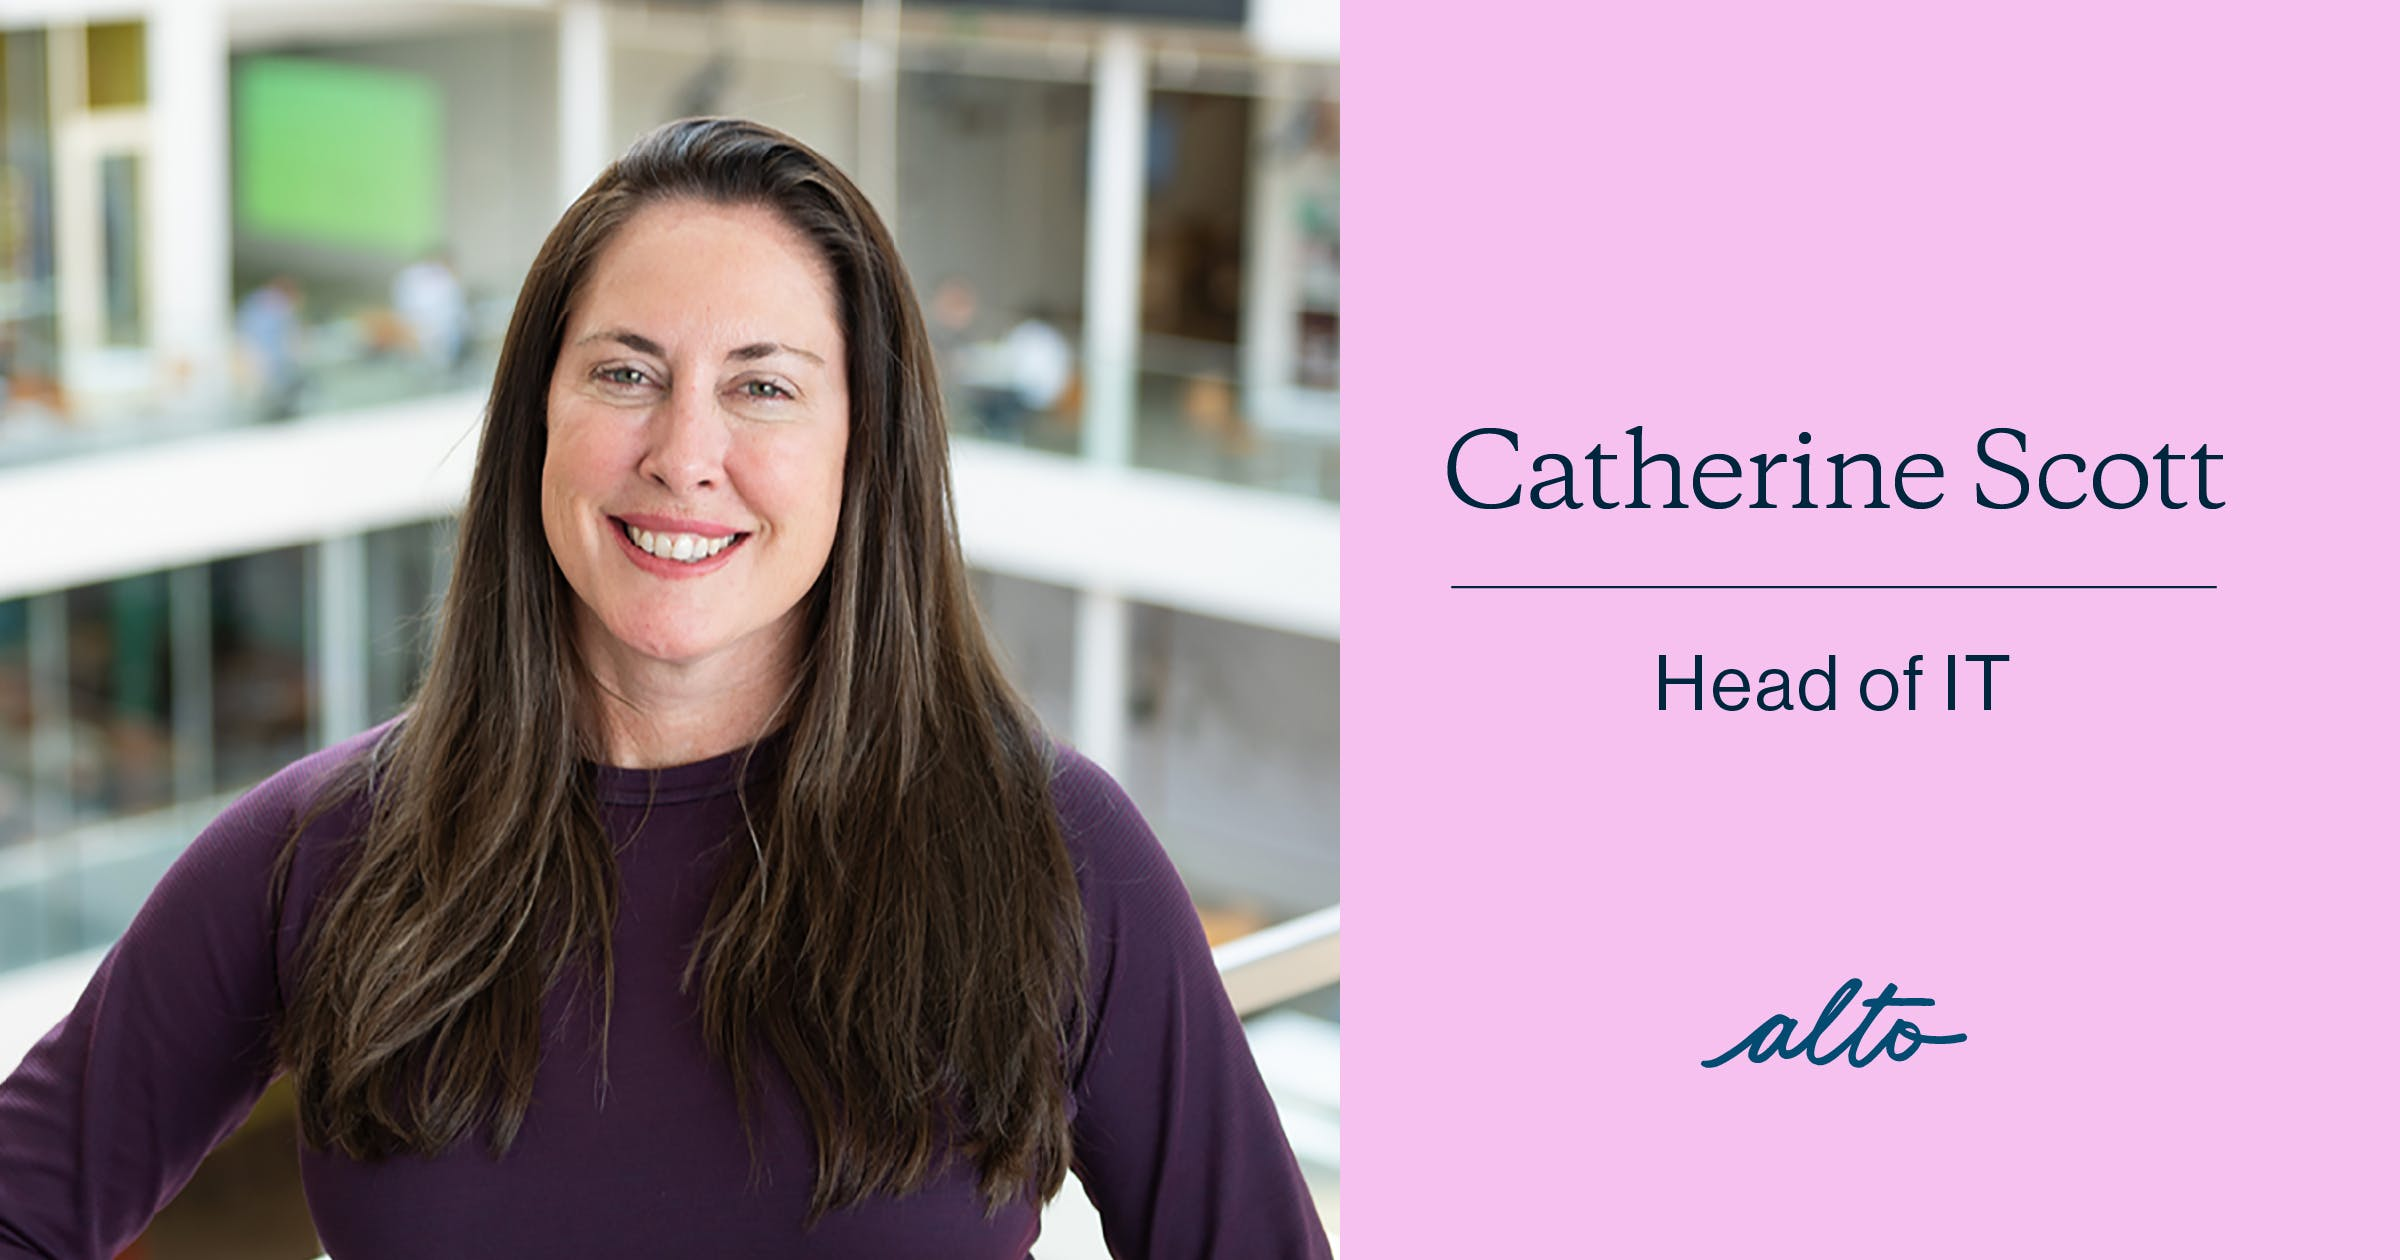 Catherine Scott, Head of IT at Alto